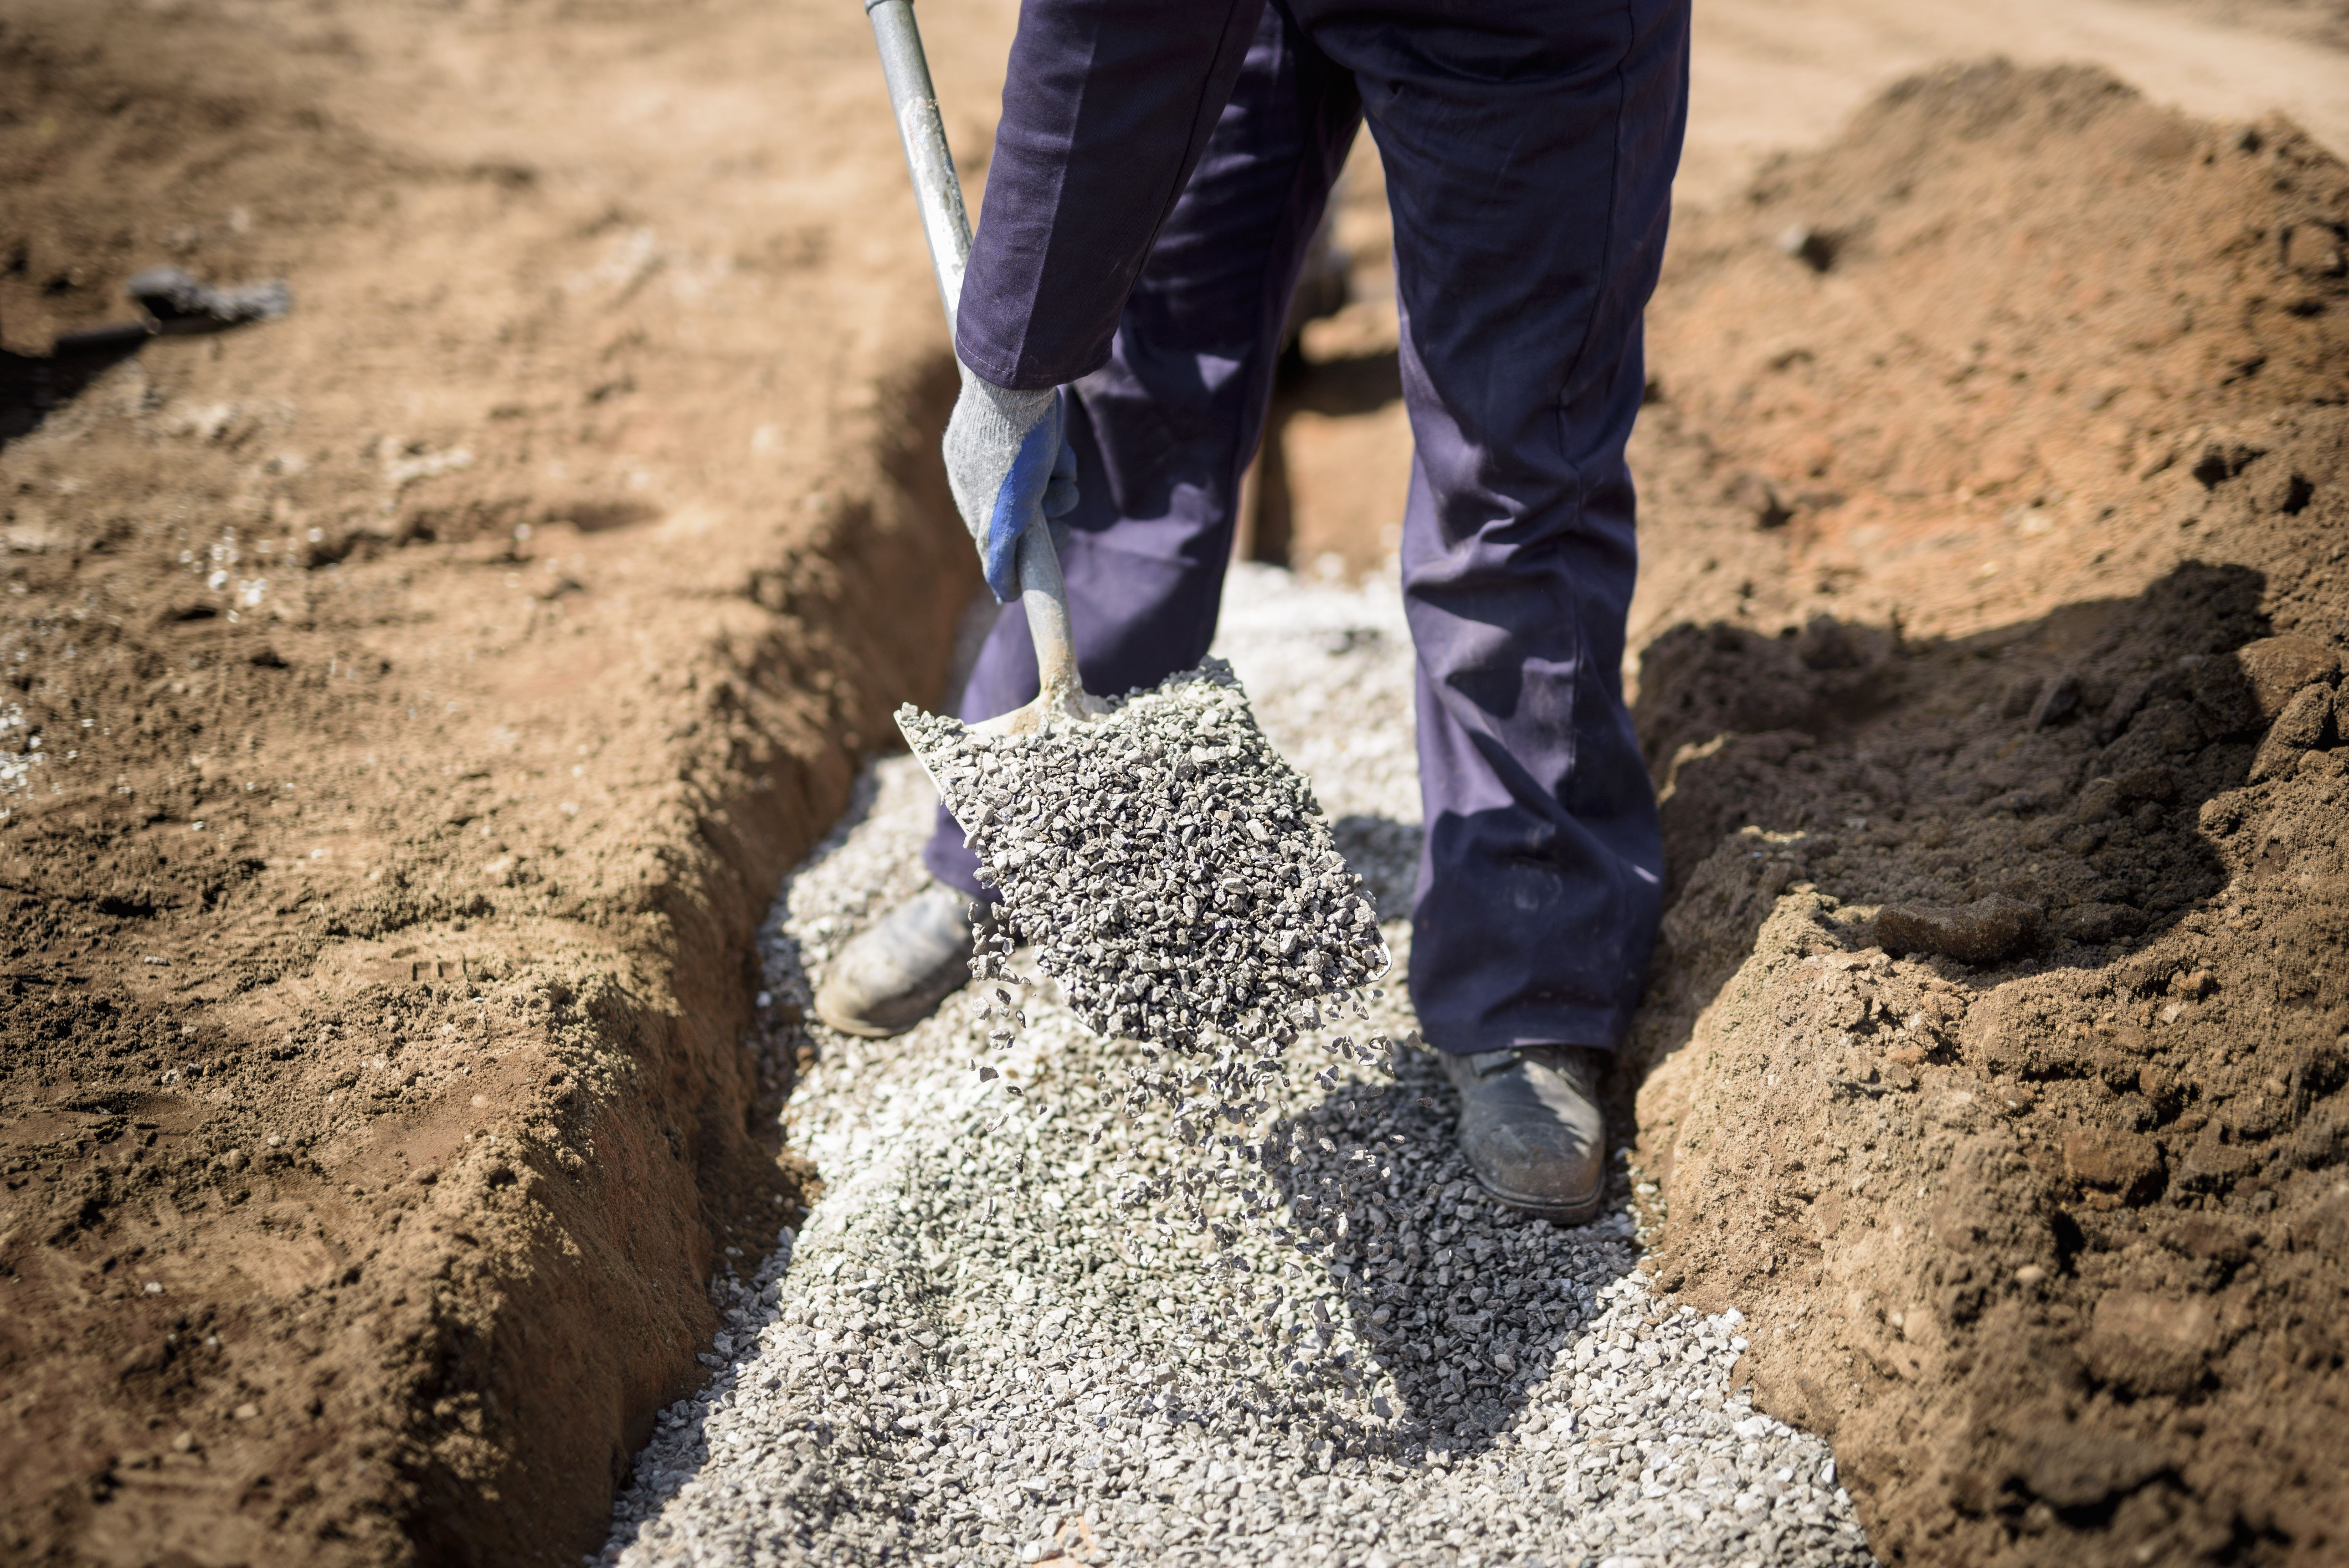 How To Avoid Utilities When Digging In Your Yard Run Electrical Wires Underground Reach Sheds Lights Patios And